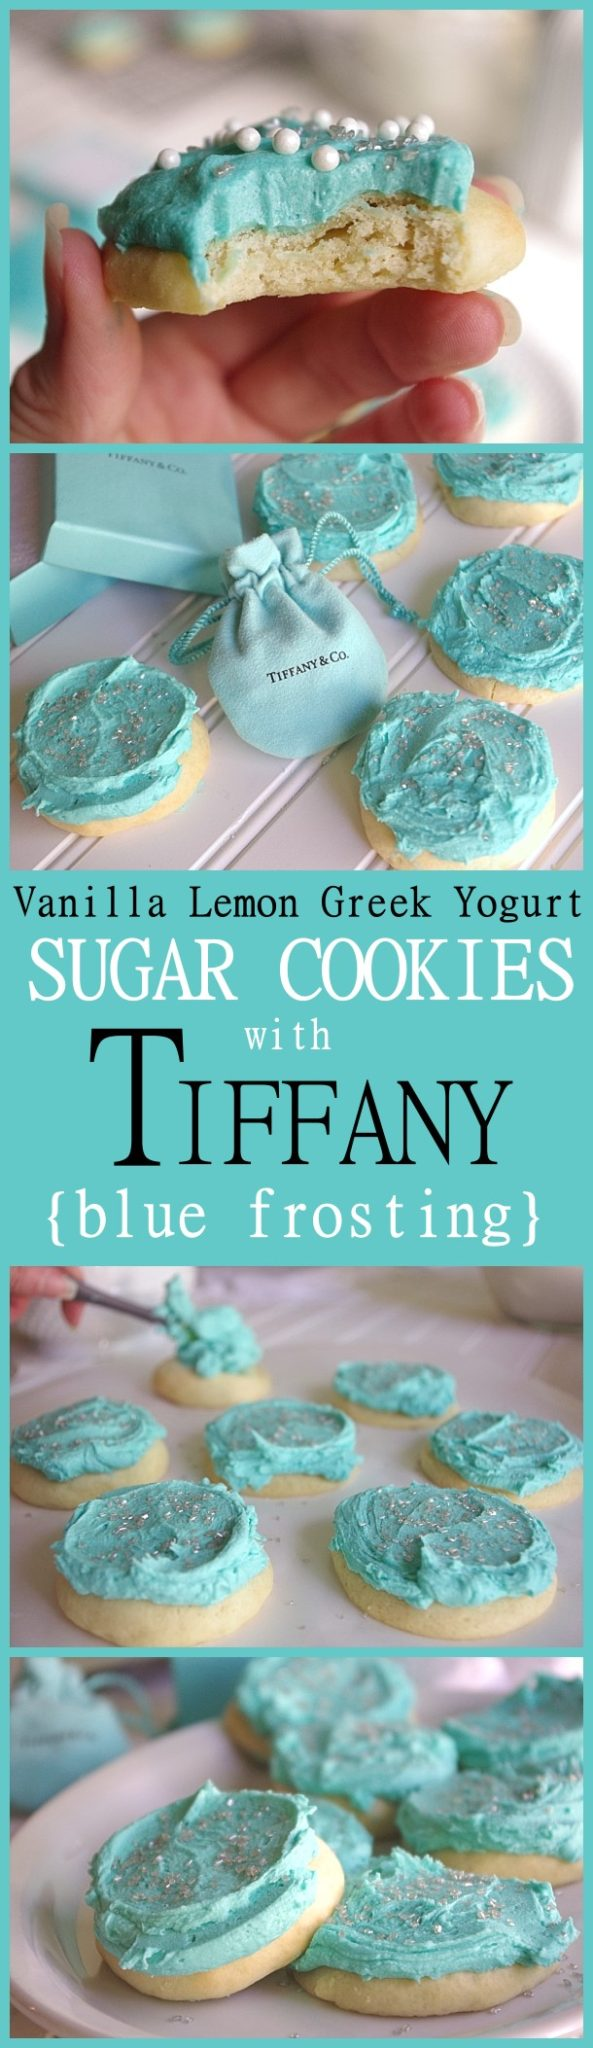 NO ROLLING and NO REFRIGERATION down time - Yummy Vanilla Lemon Greek Yogurt Moist and perfect Sugar Cookies with Tiffany Blue Frosting Recipe and Tutorial - These are SO pretty and over the top lightly lemony YUMMY! 30 minutes tops from start to your first pan out of the oven.